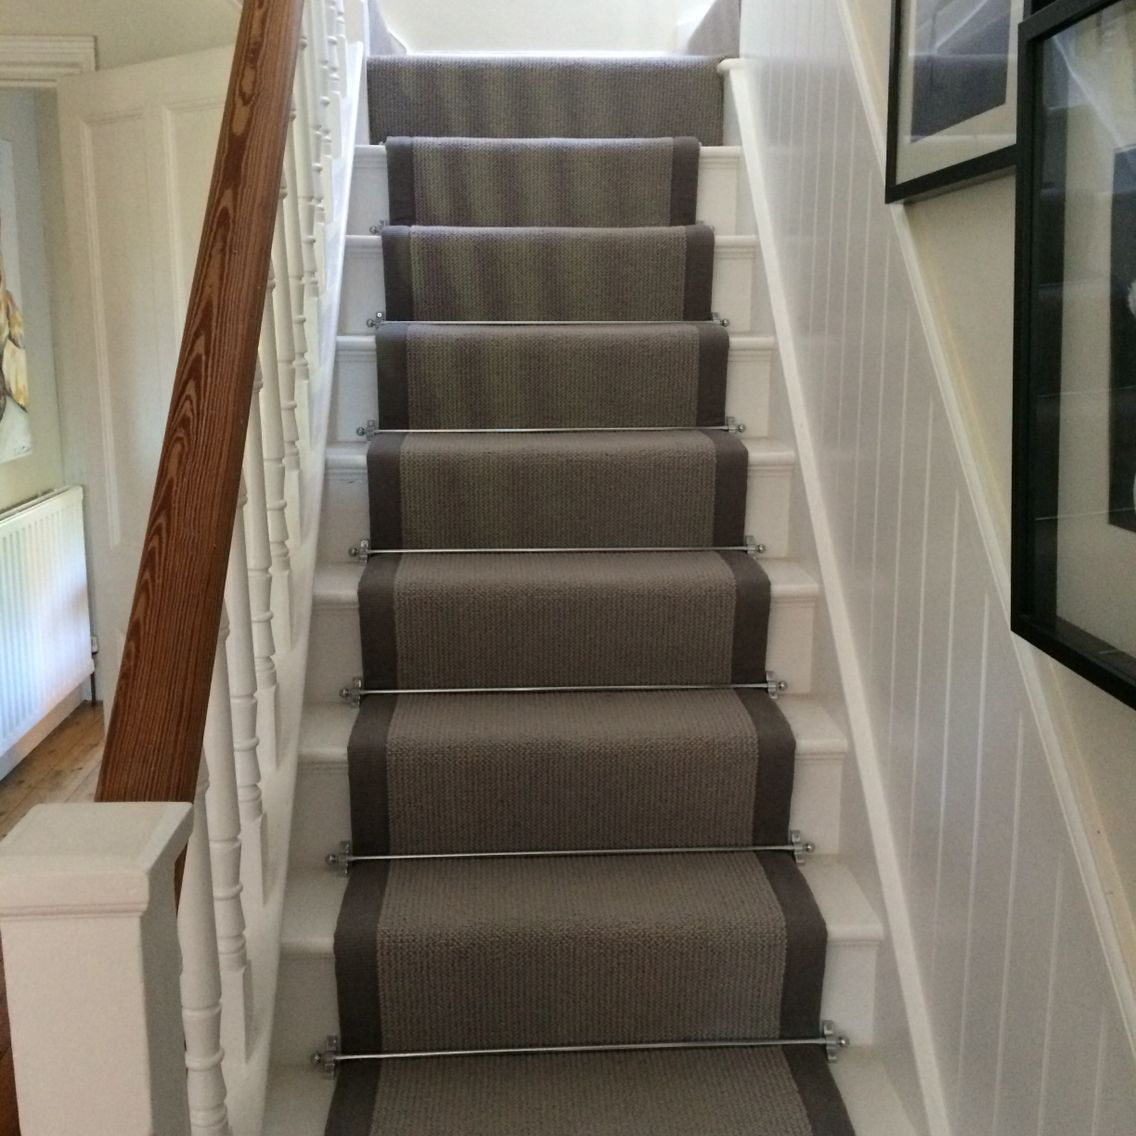 Pennells Carpets Grey Stair Runner With Chrome Bars